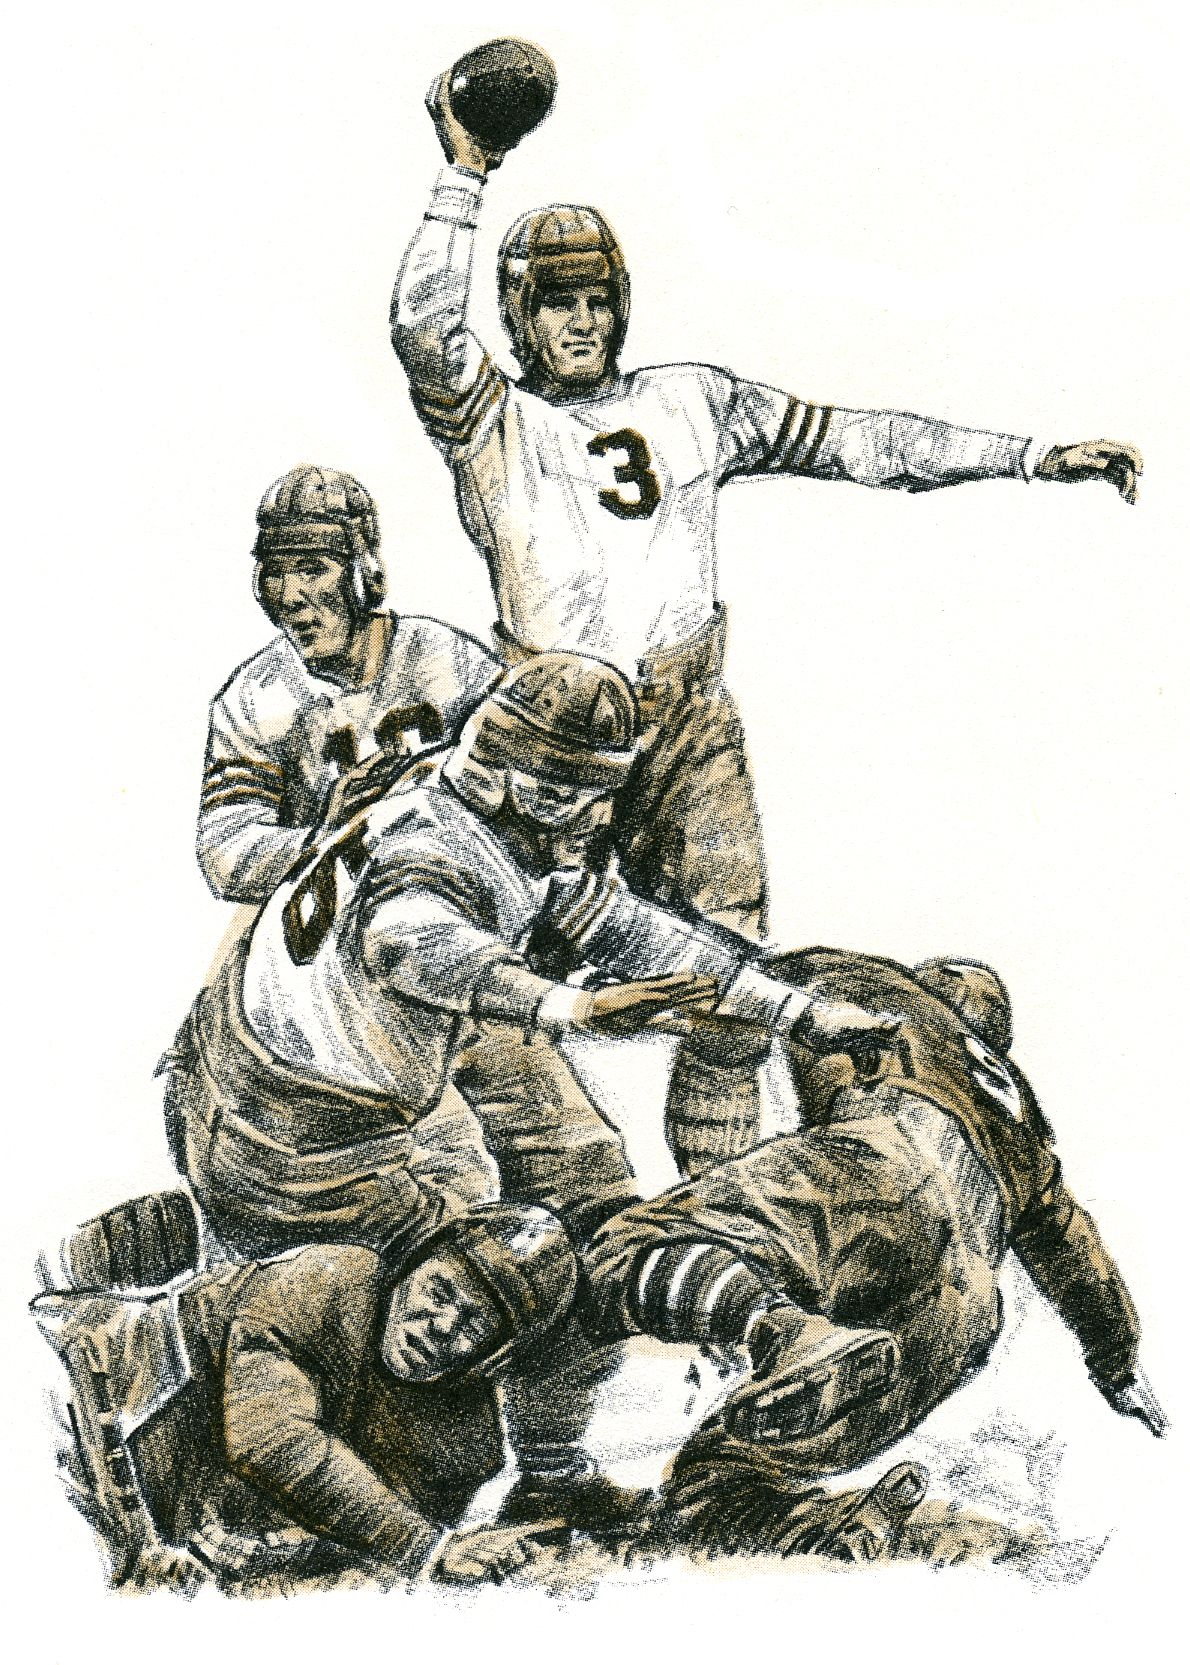 Bronko Nagurski of the Chicago Bears by Robert Riger.